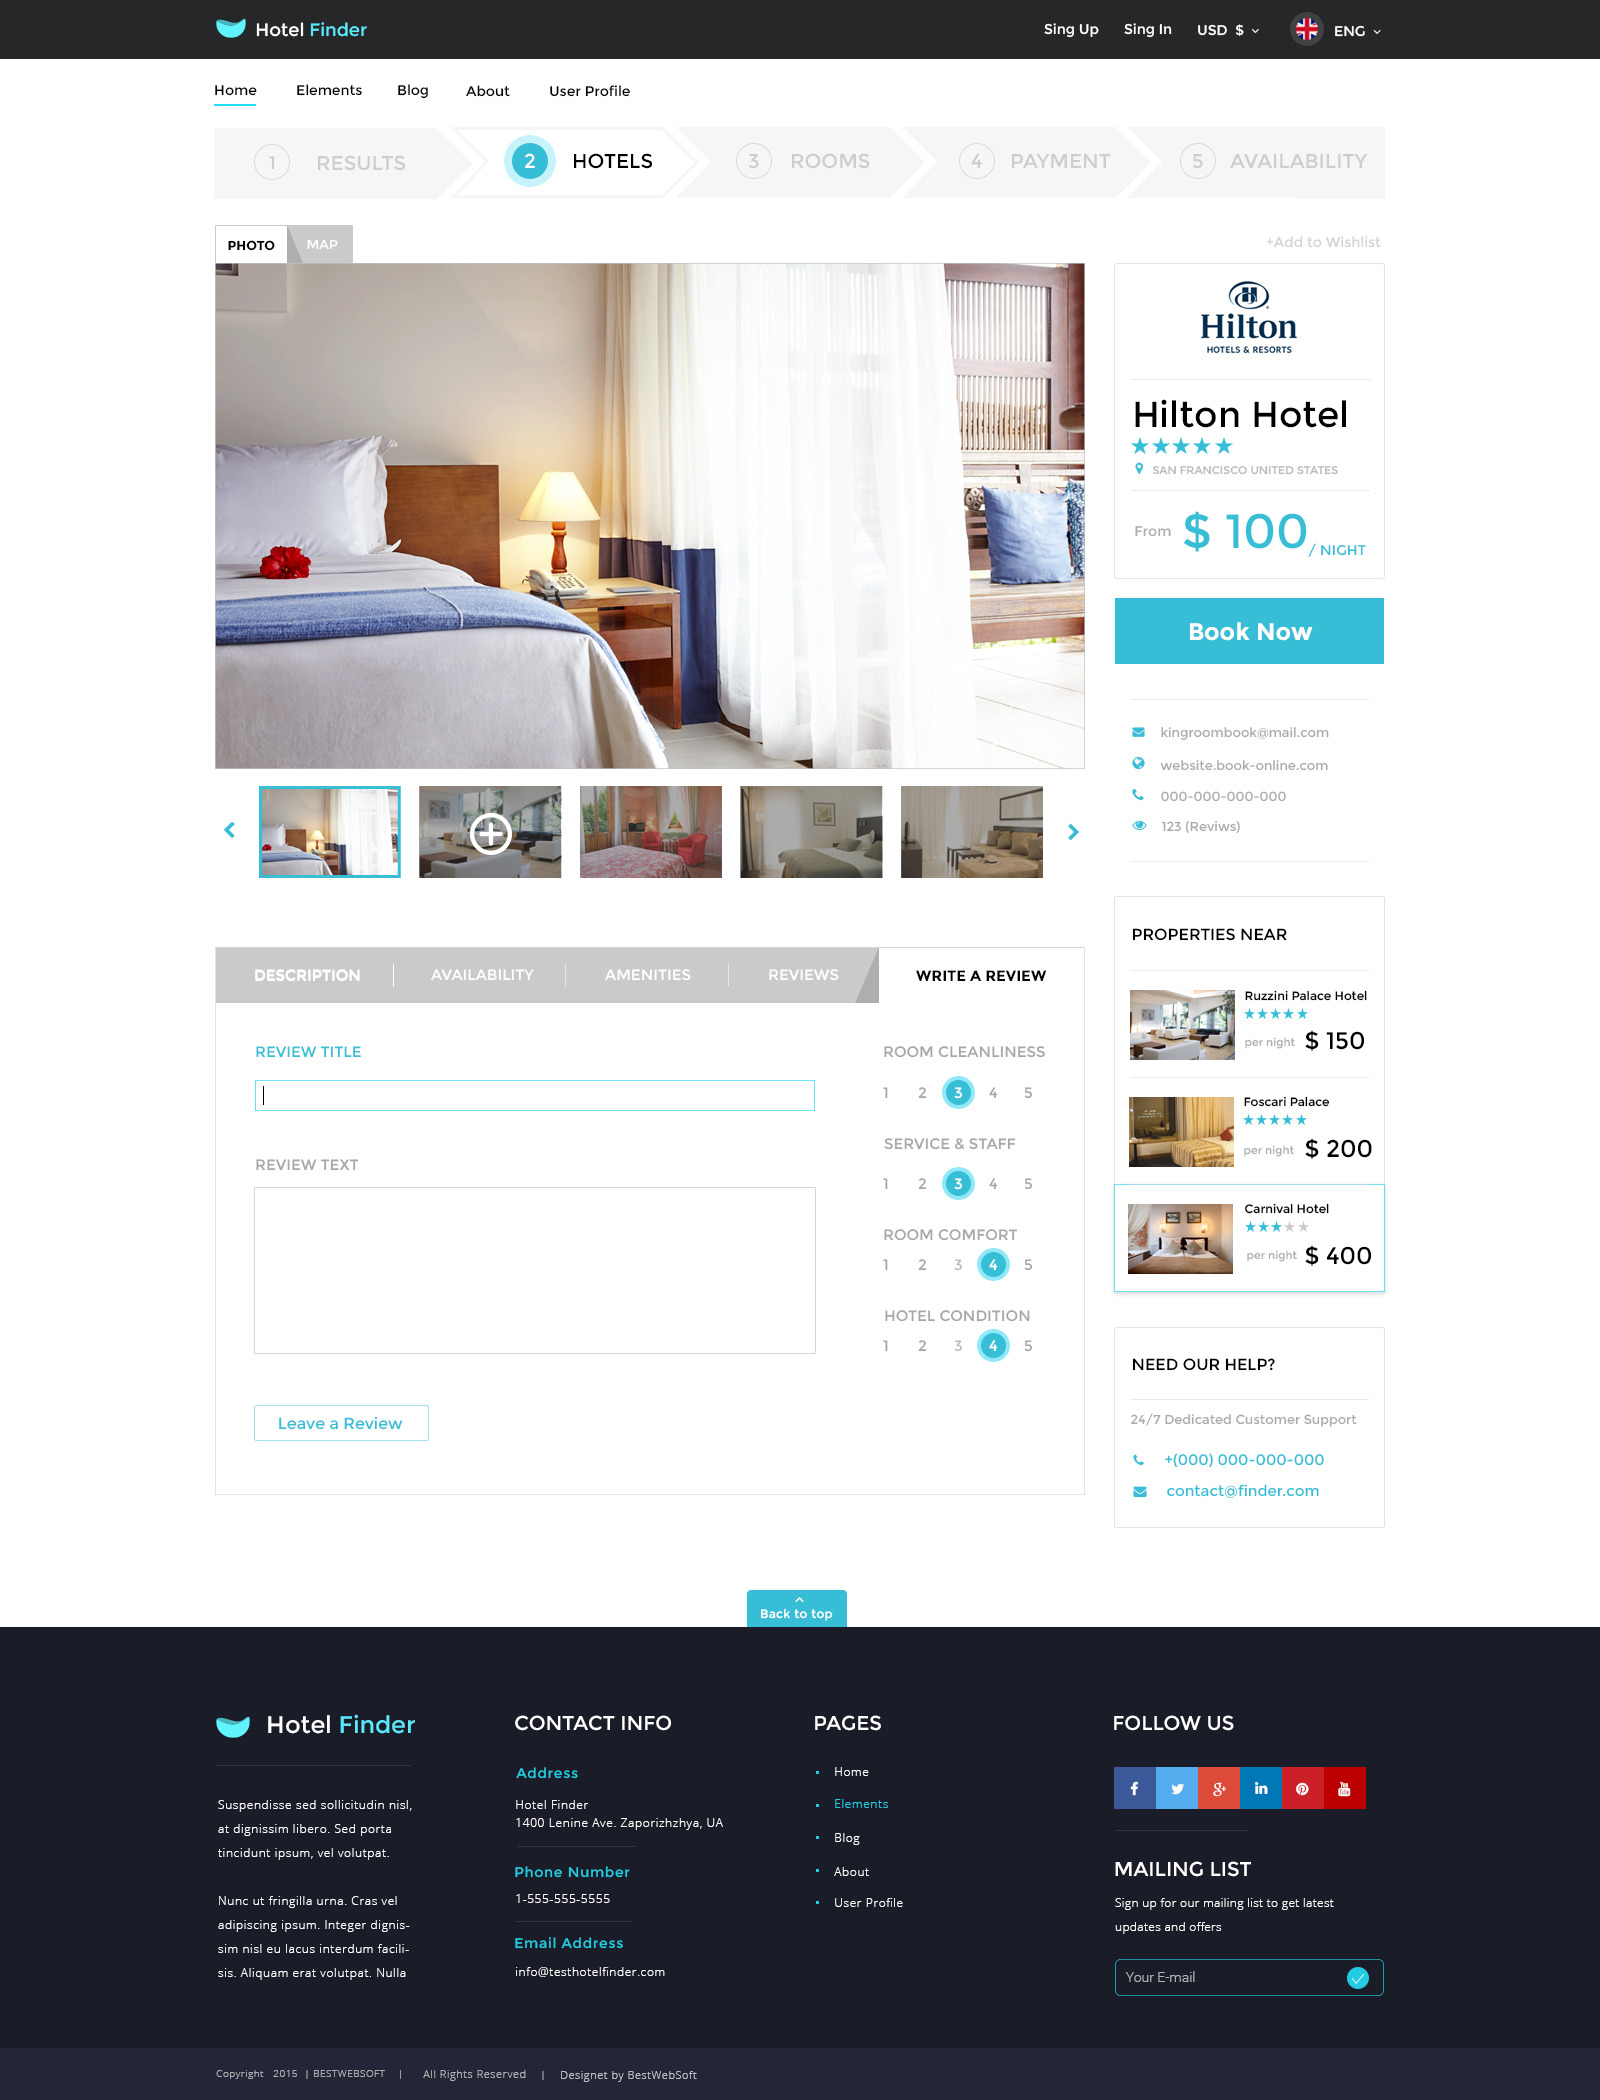 Hotel finder online booking psd template by bestwebsoft jpg10 hotel page 1200 gallery and write a review view v1g pronofoot35fo Choice Image